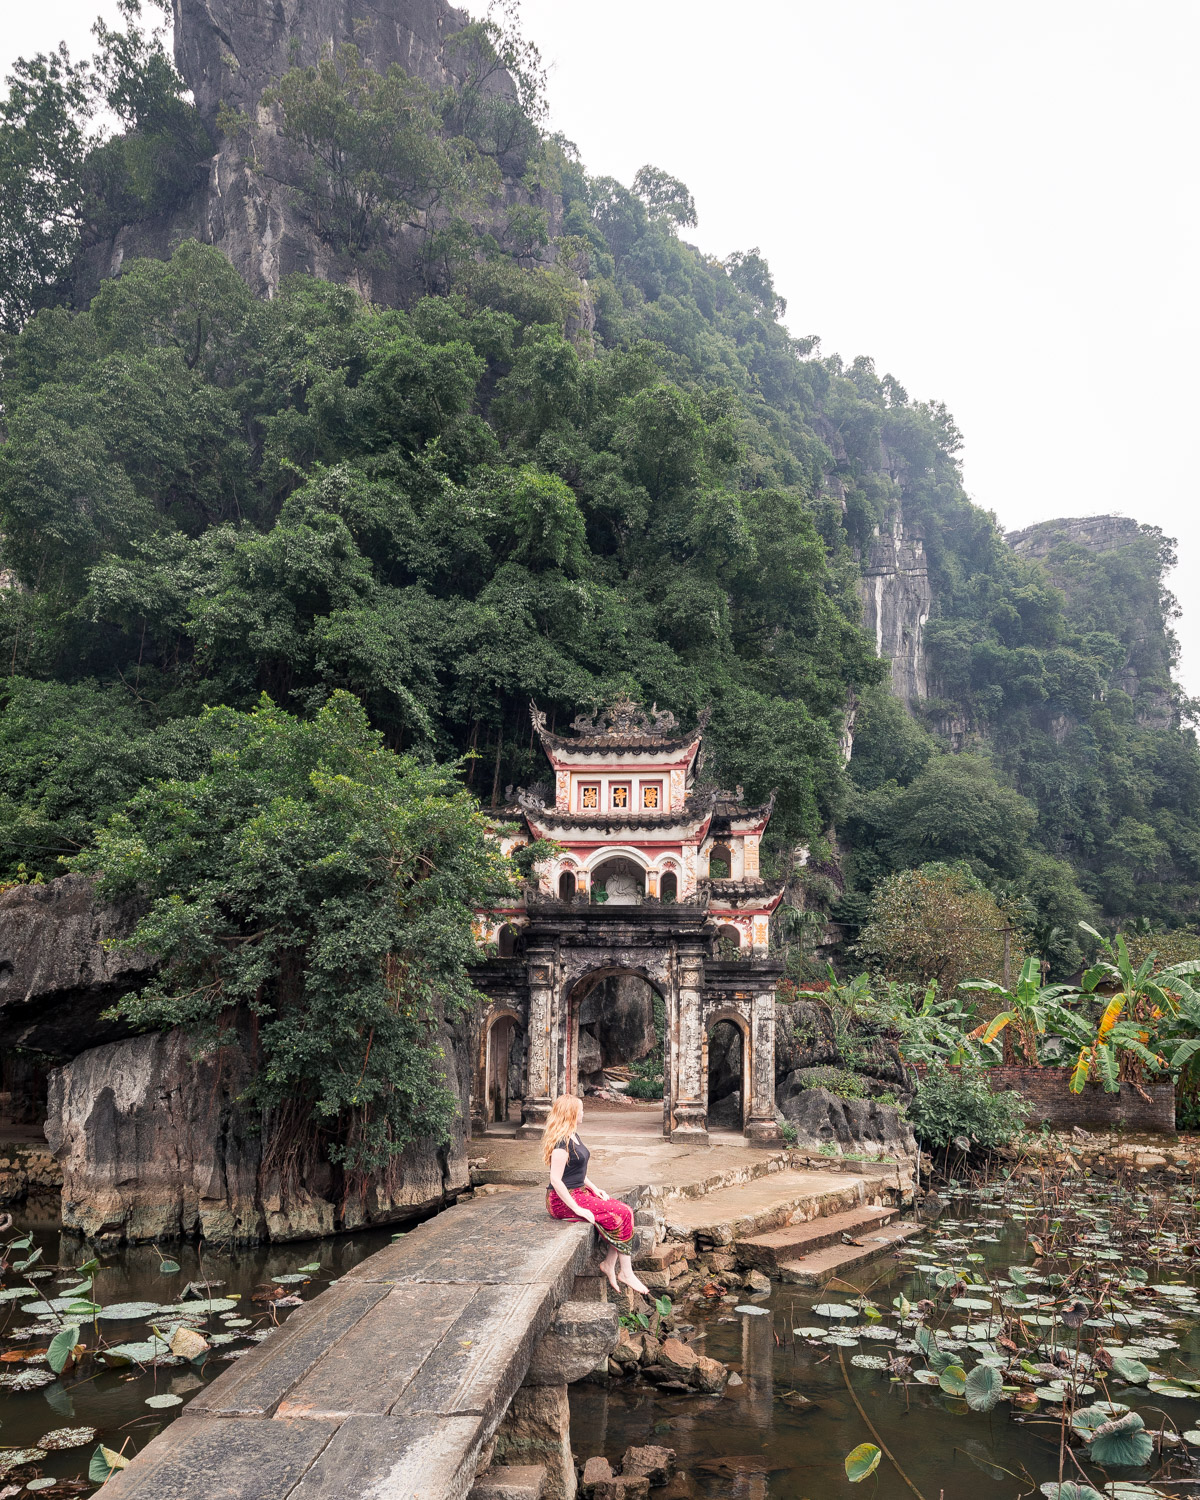 The entrance to Bich Dong Pagoda, Tam Coc Vietnam